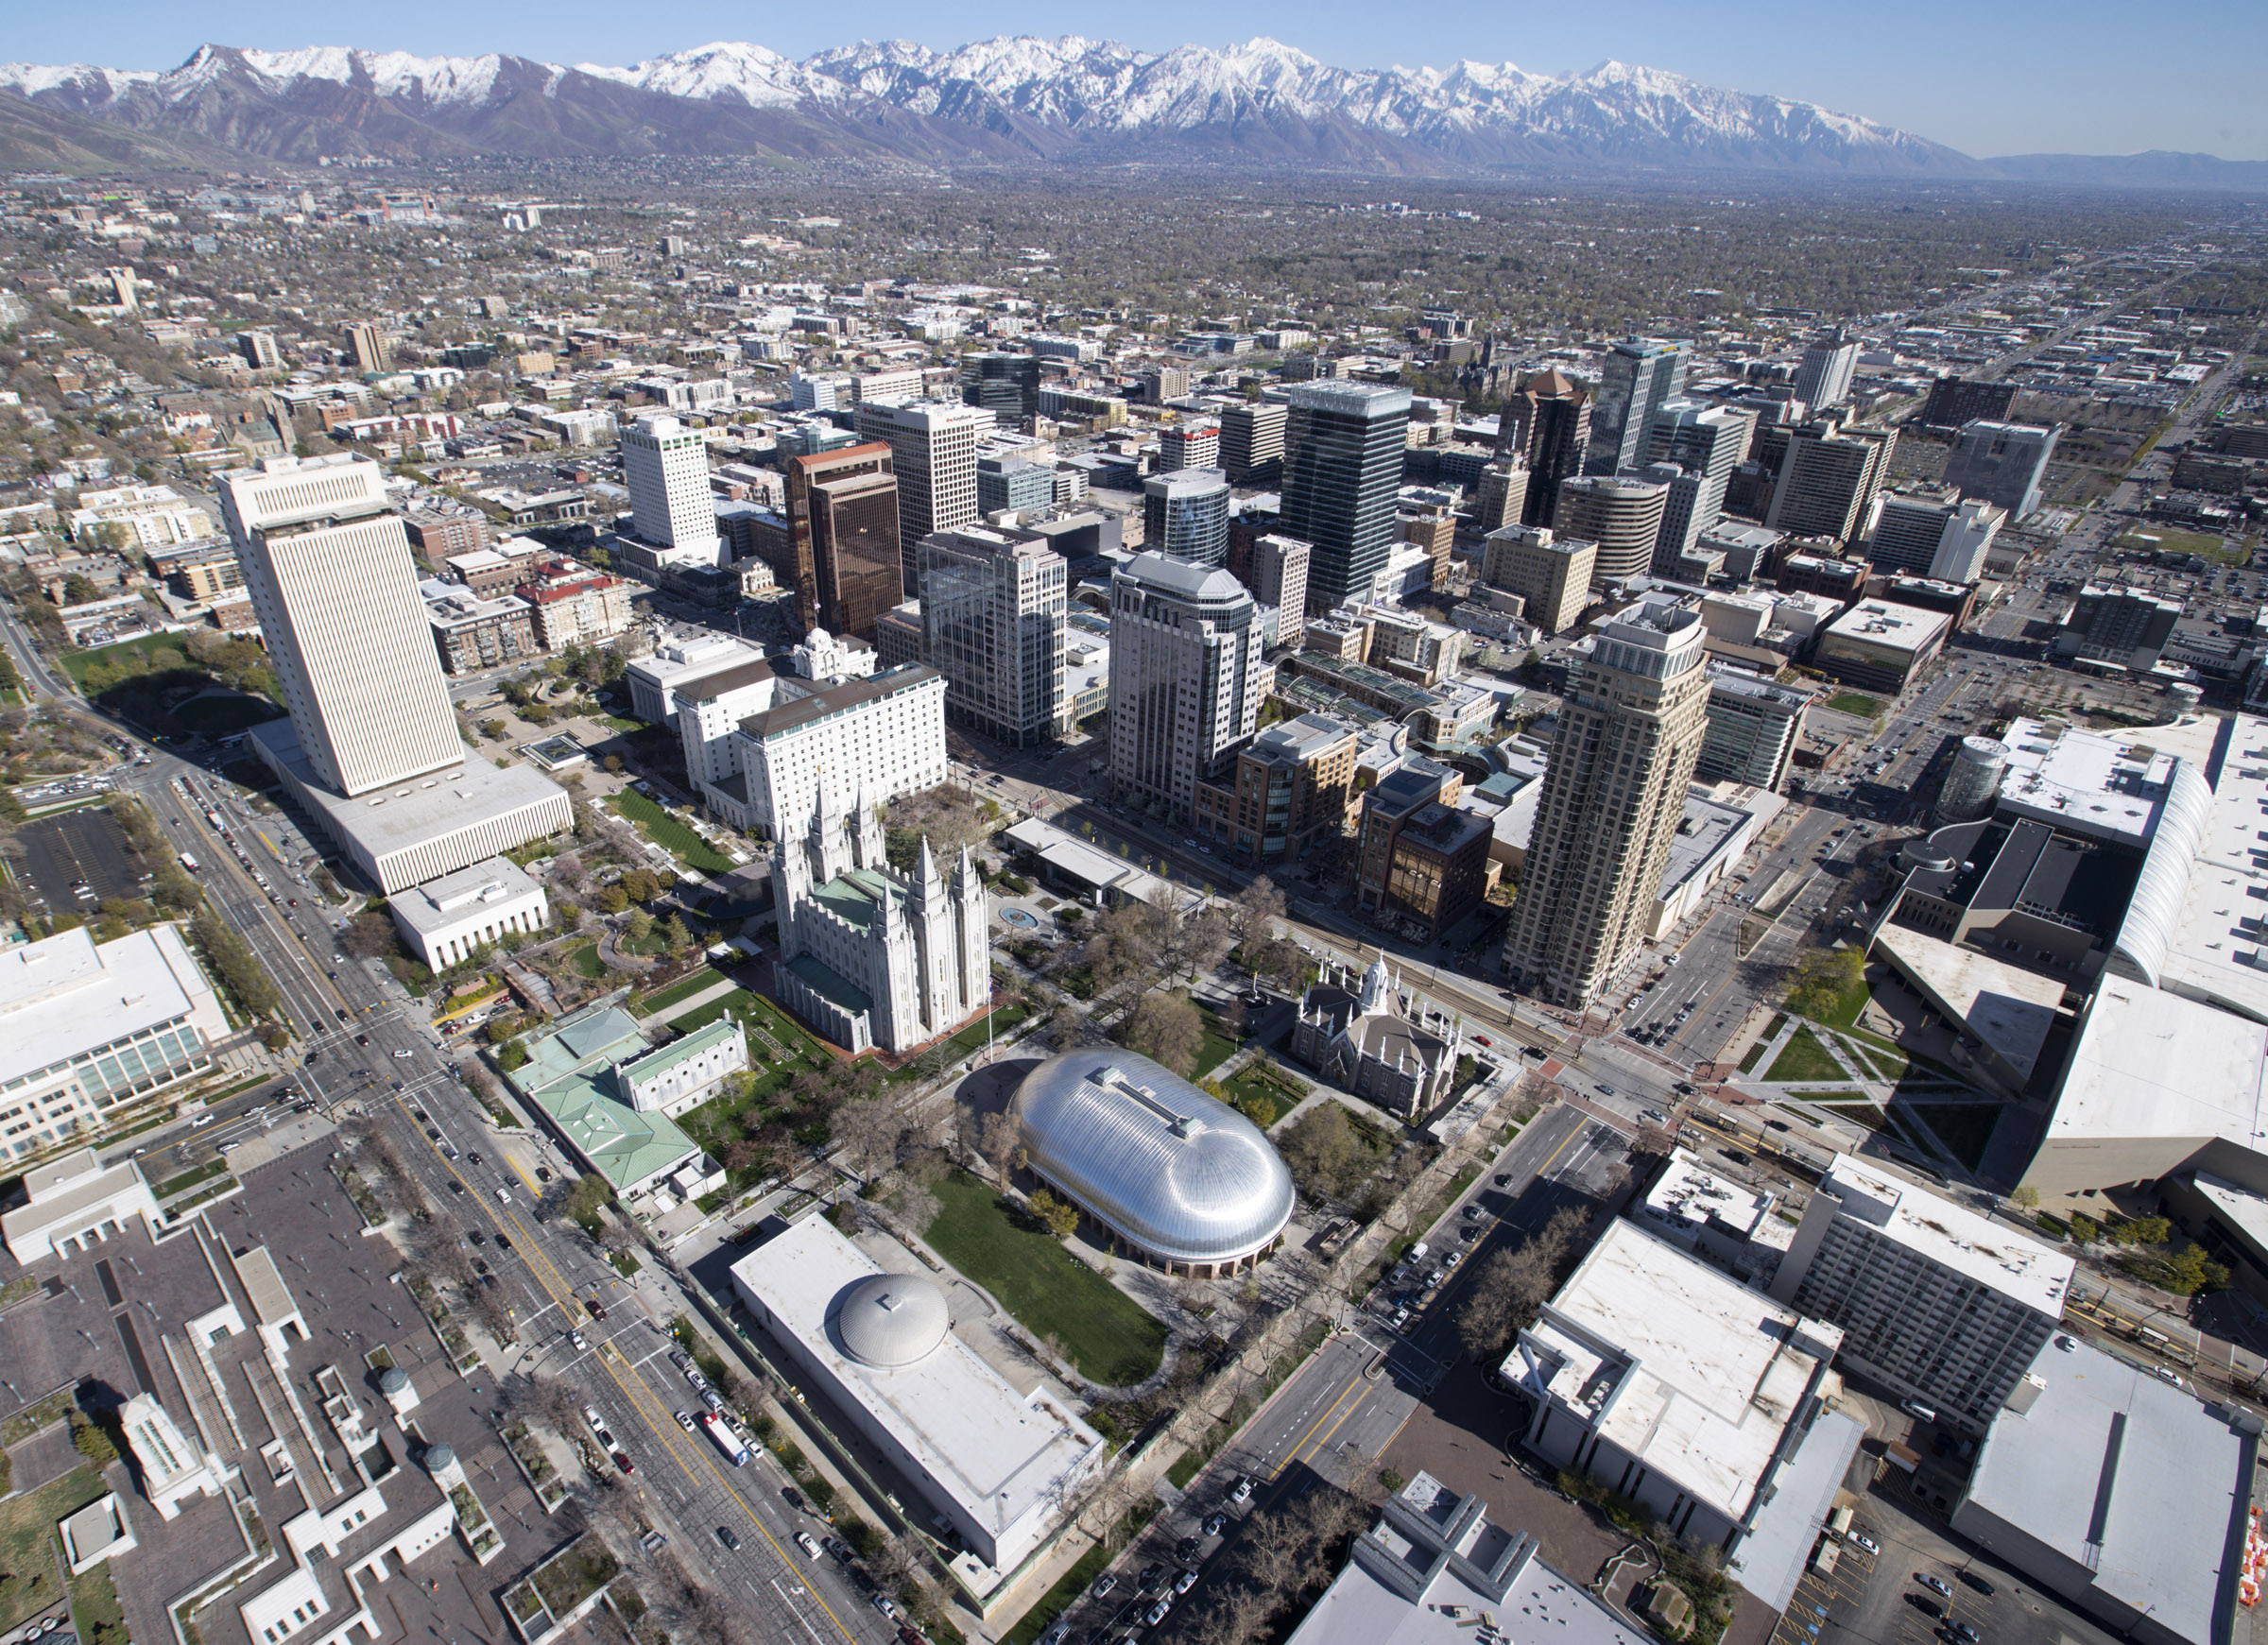 Temple Square and downtown Salt Lake City on Thursday, April 18, 2019. Leaders of The Church of Jesus Christ of Latter-day Saints discontinued a policy Monday morning, May 6, requiring couples who marry civilly to wait one year before being sealed in the temple.